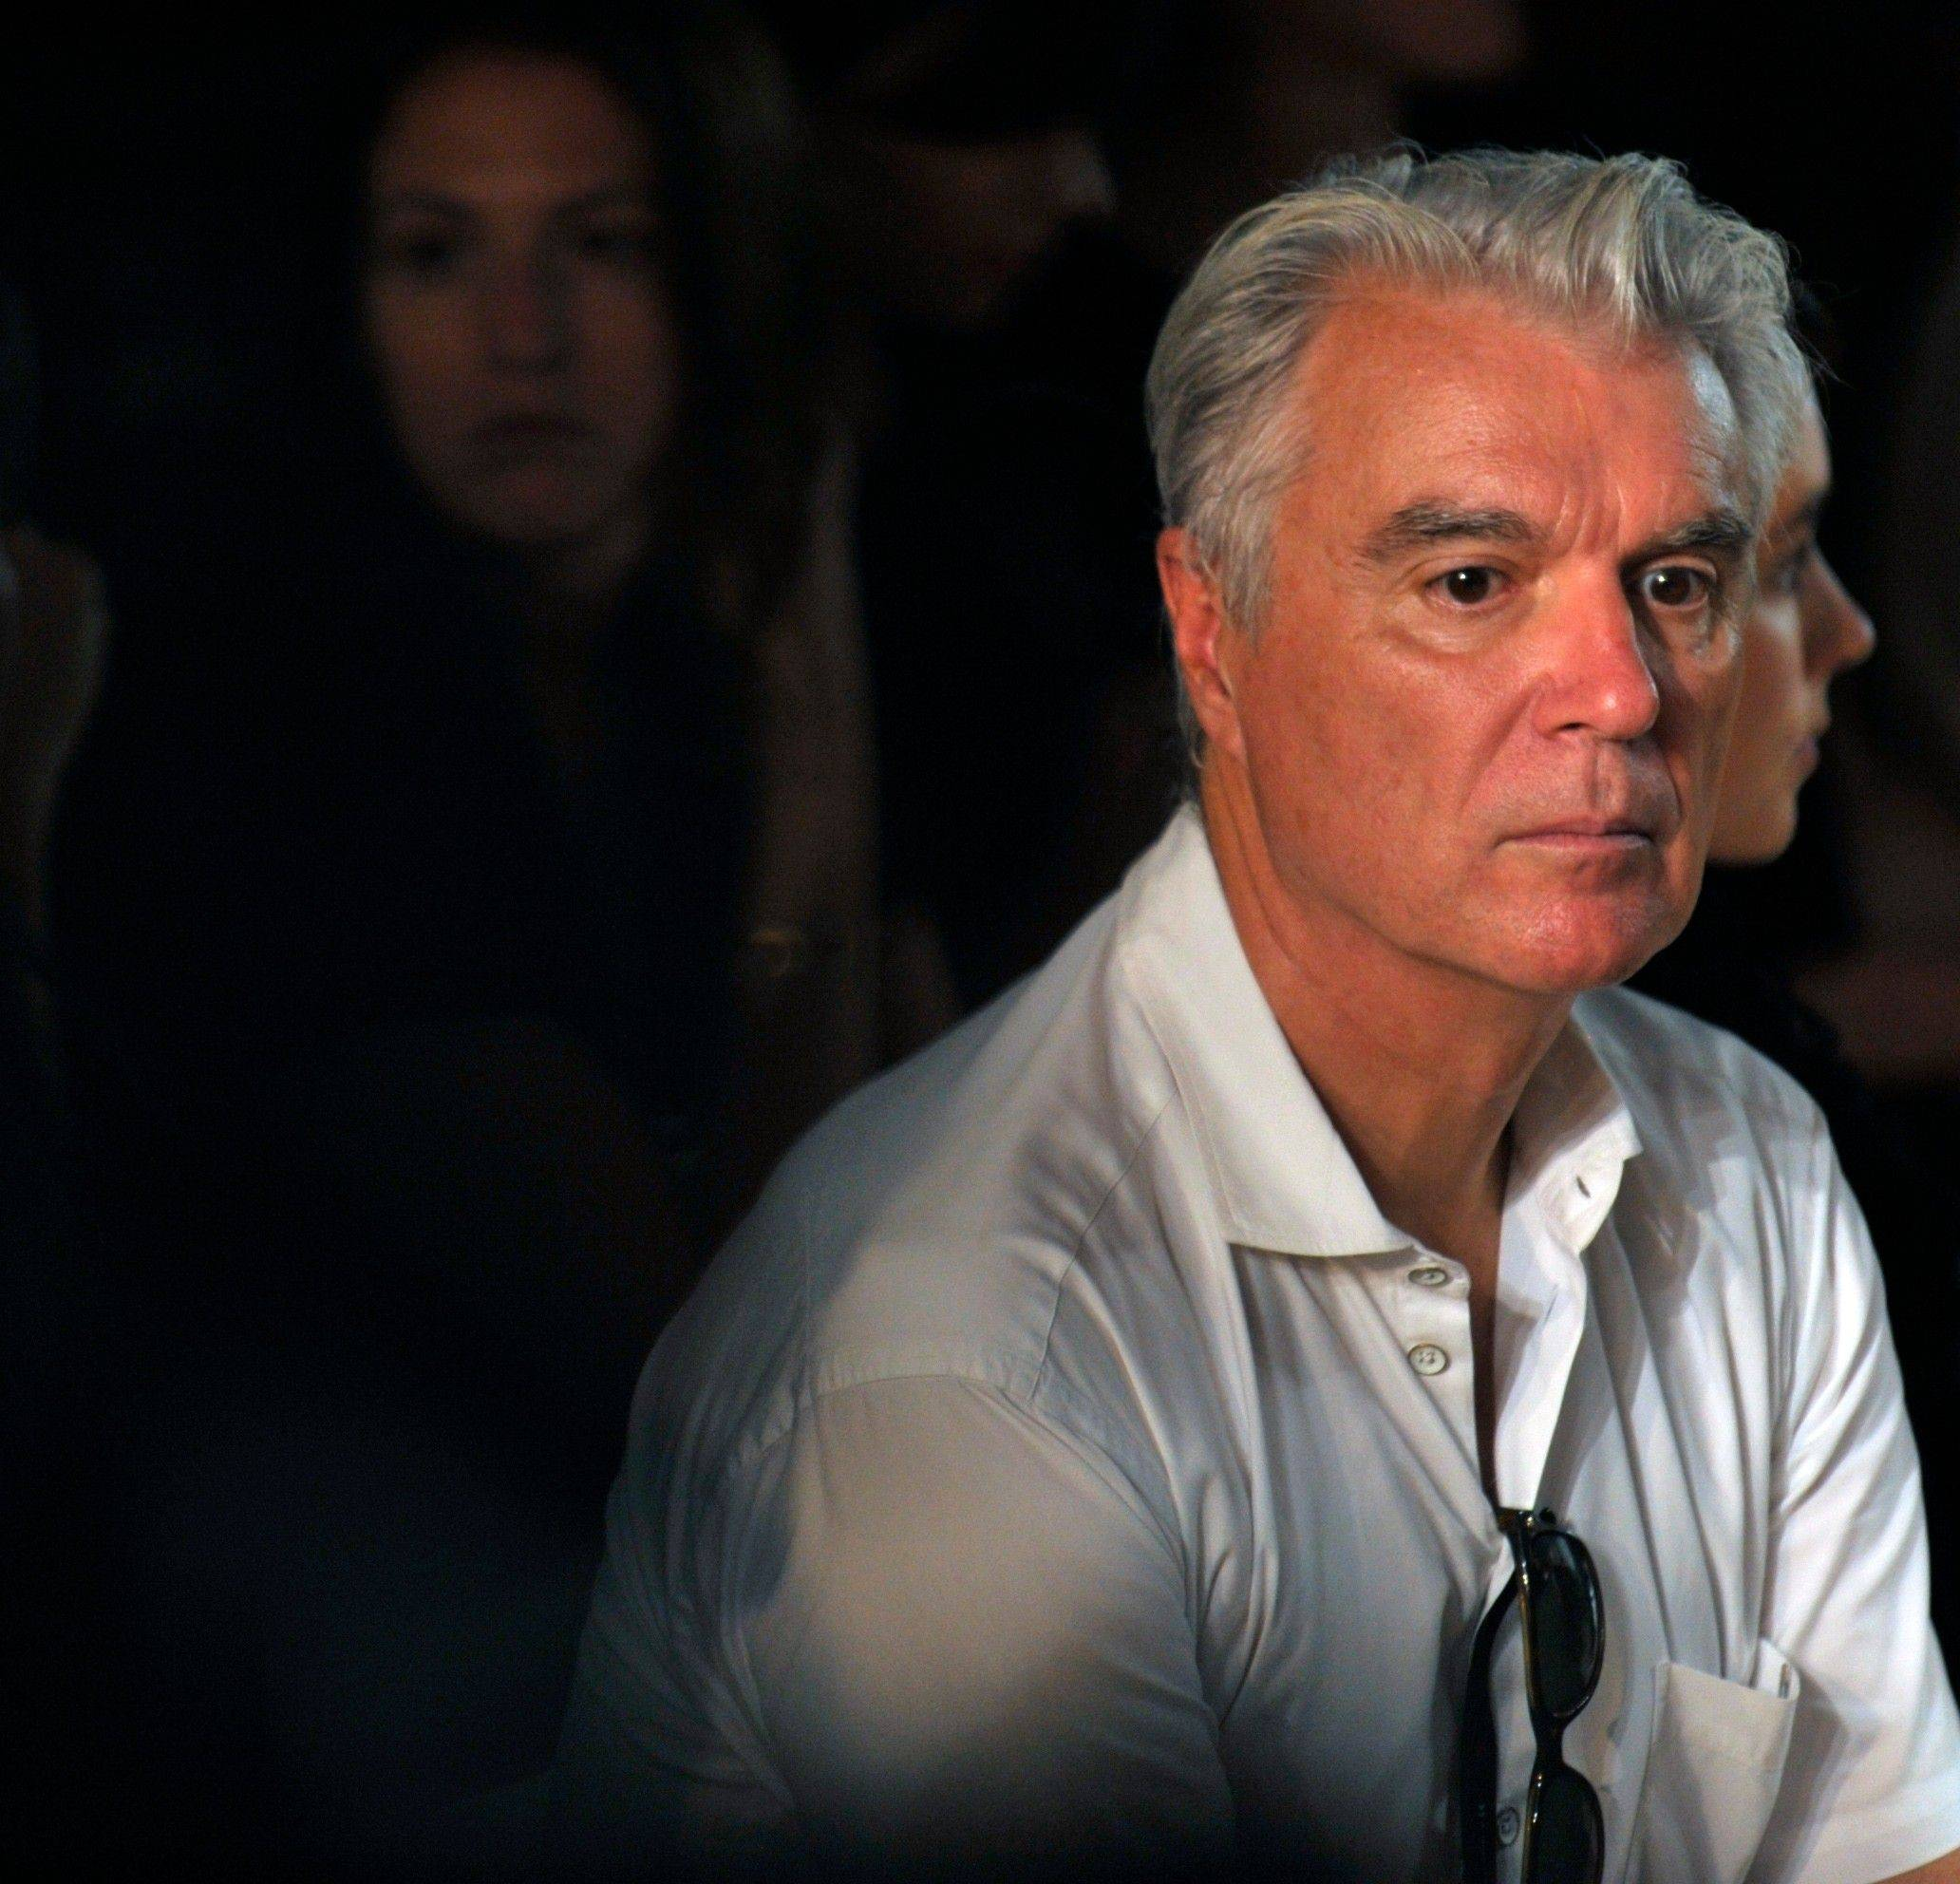 Musician David Byrne attends the Spring 2012 fashion show from Rodarte during Fashion Week, Tuesday, Sept. 13, 2011 in New York.